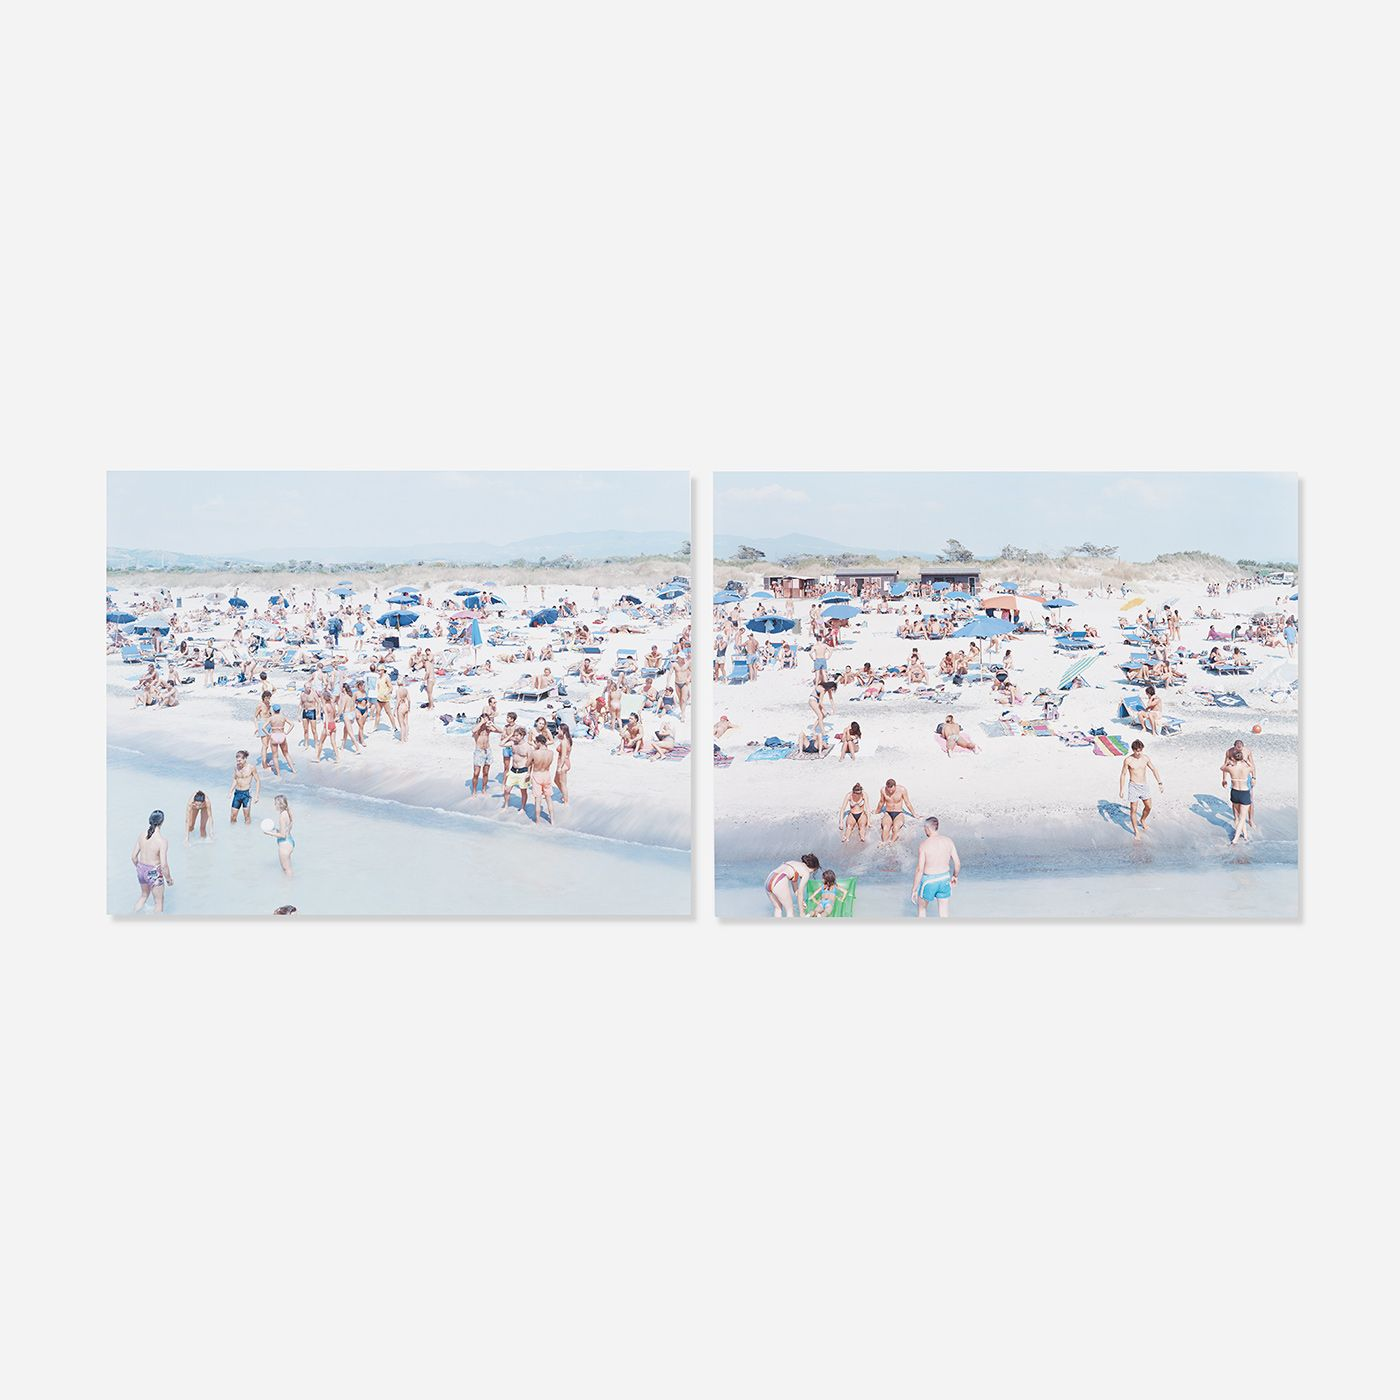 Framed. Massimo Vitali. This: Rosignano (diptych). Love his work.